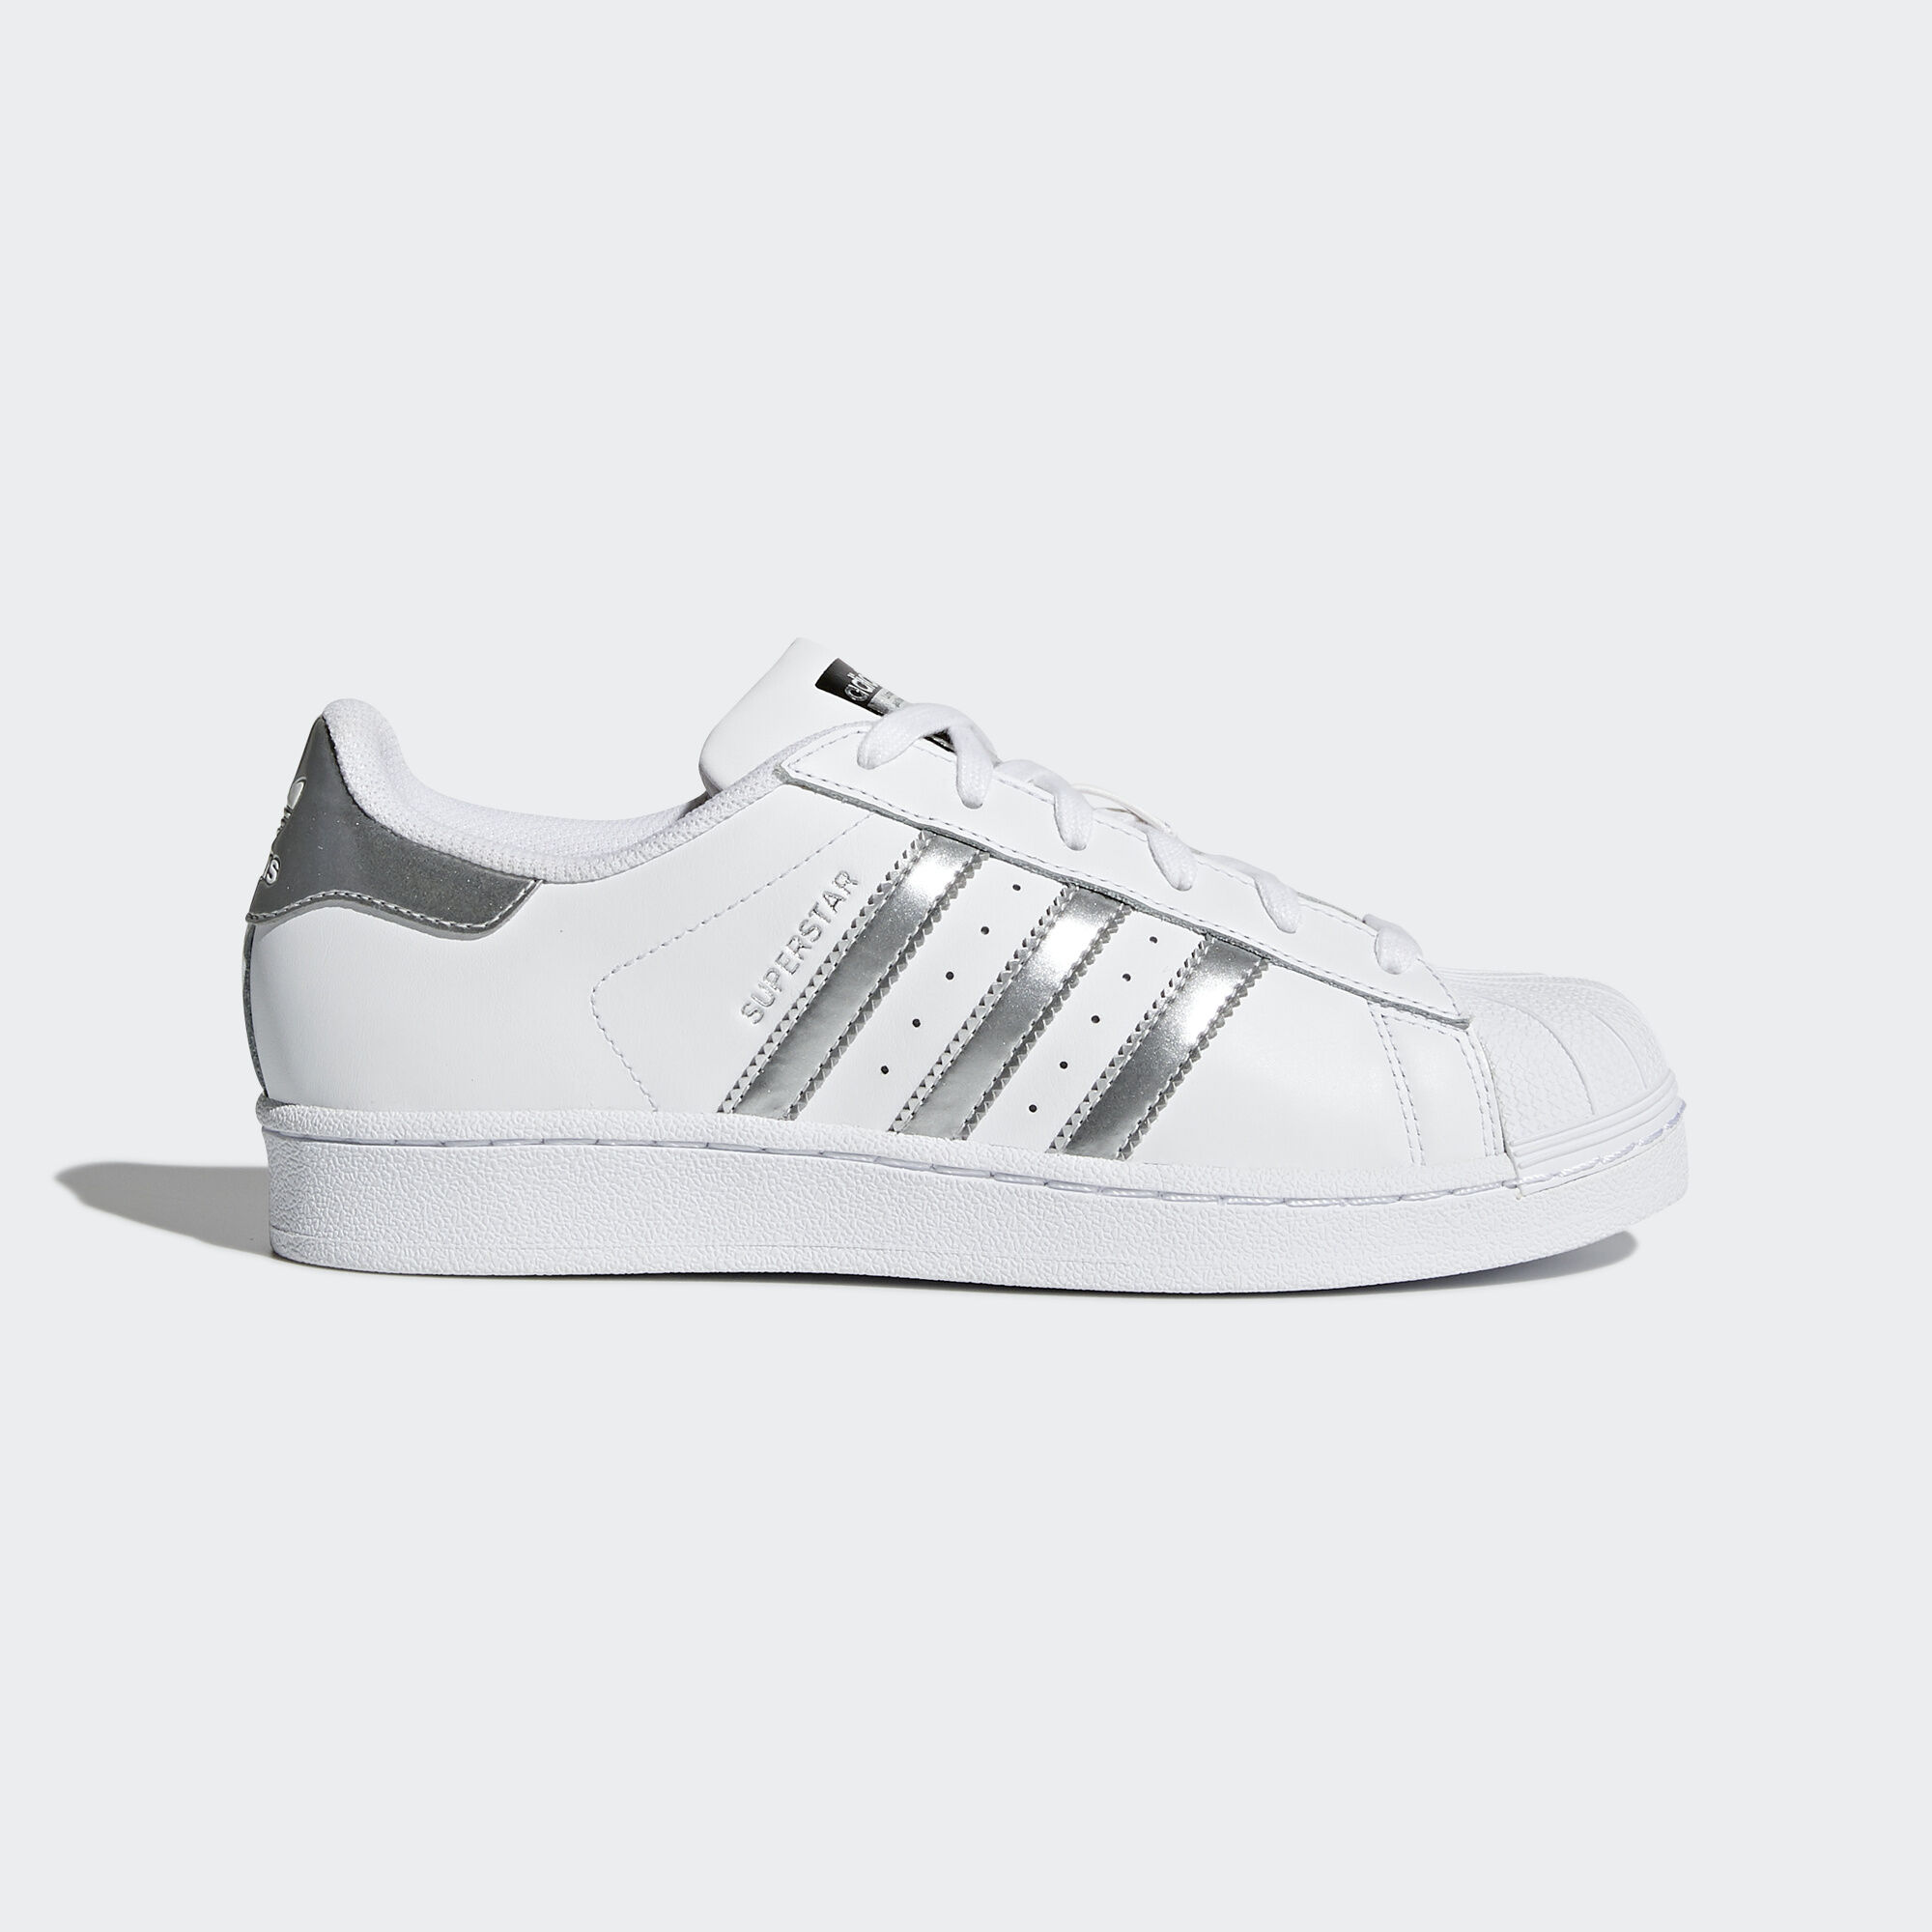 Adidas Superstar Metallic Weiß